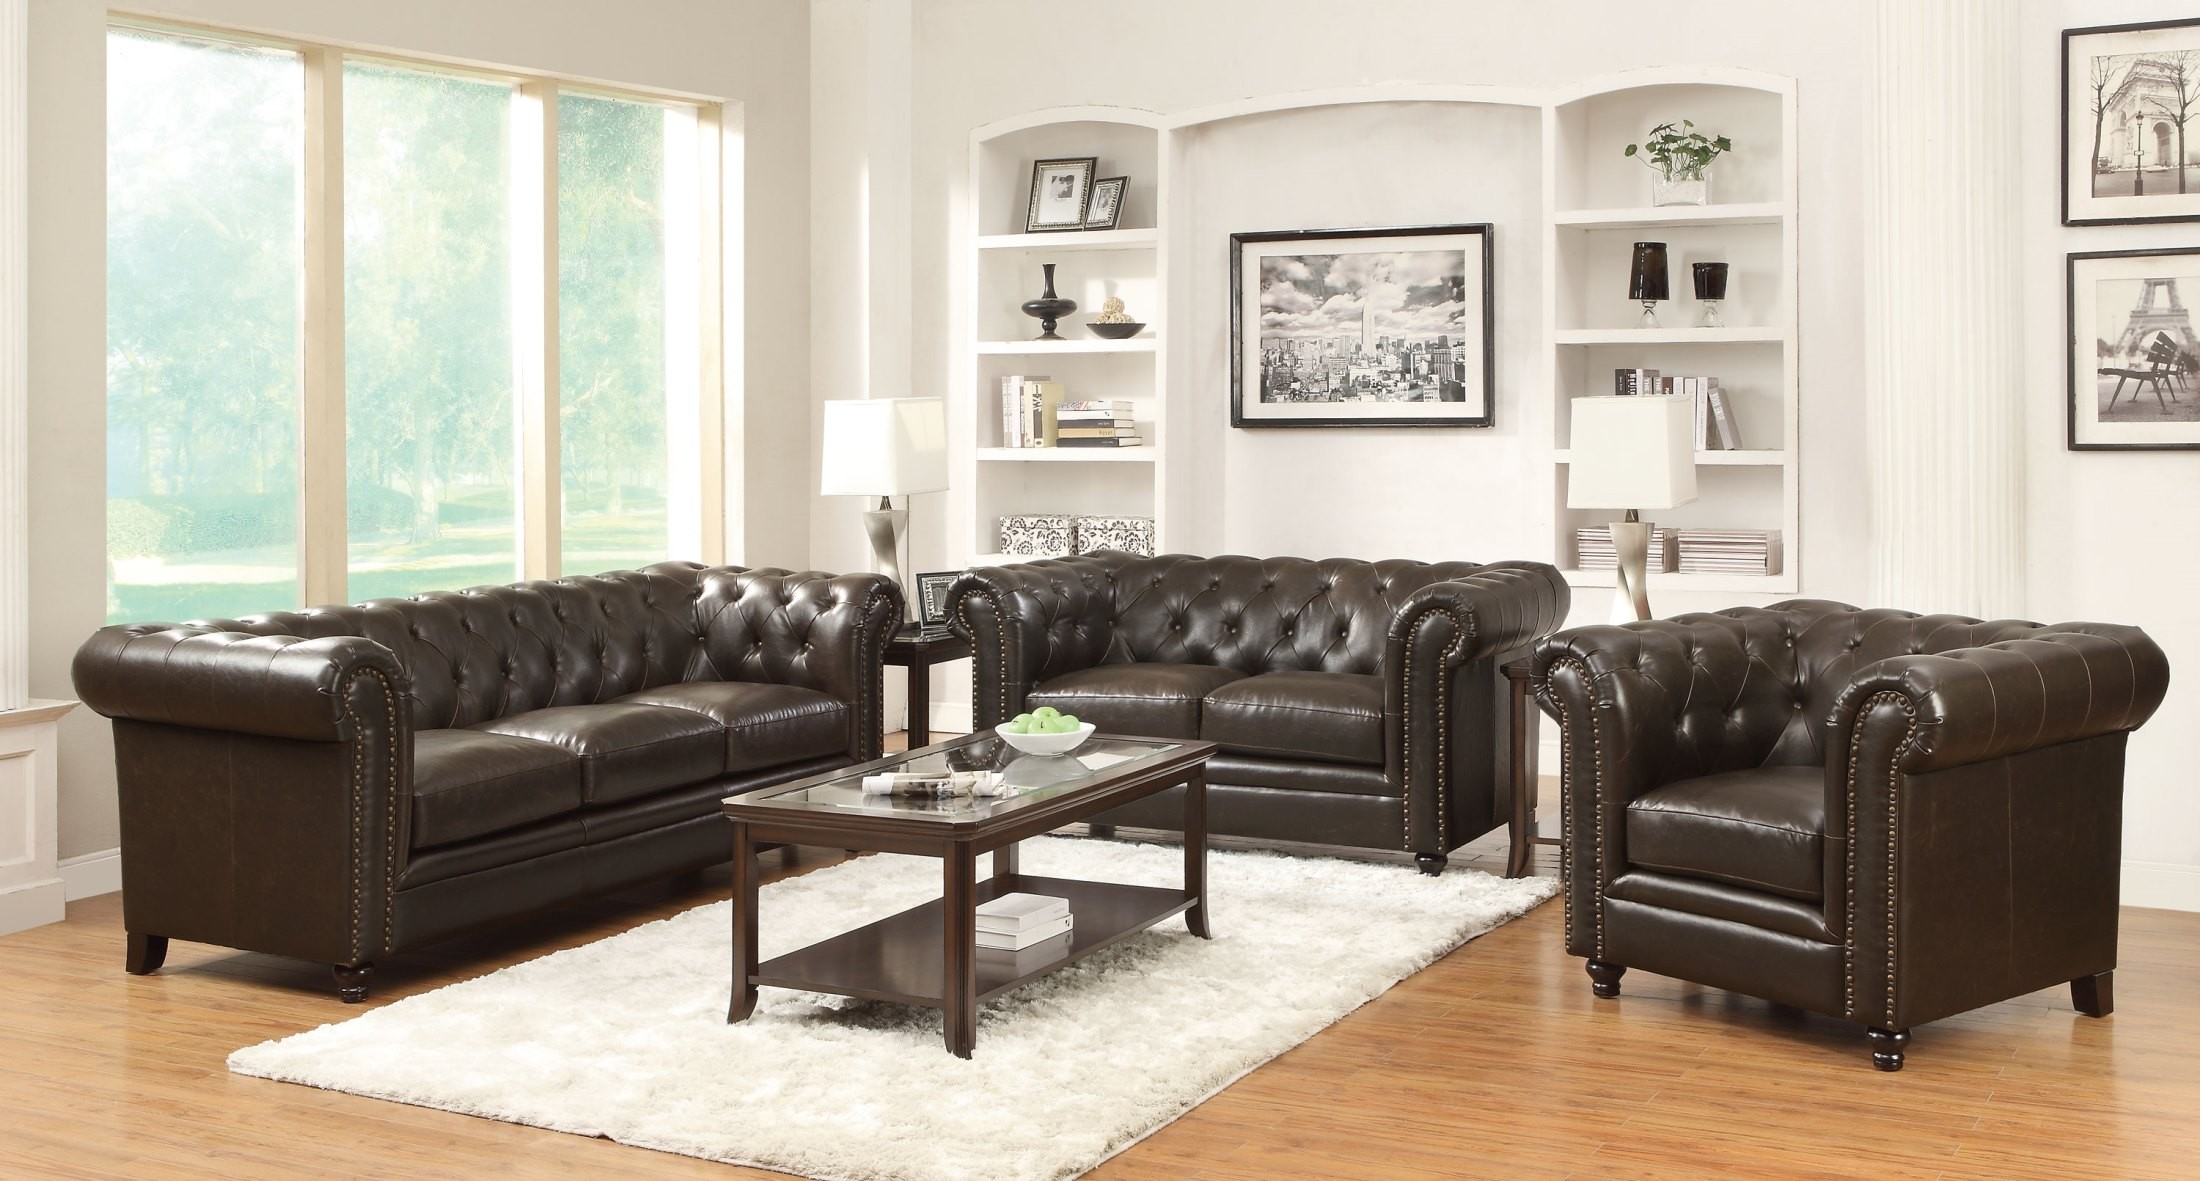 Roy brown living room set from coaster 504551 2 for Brown living room set